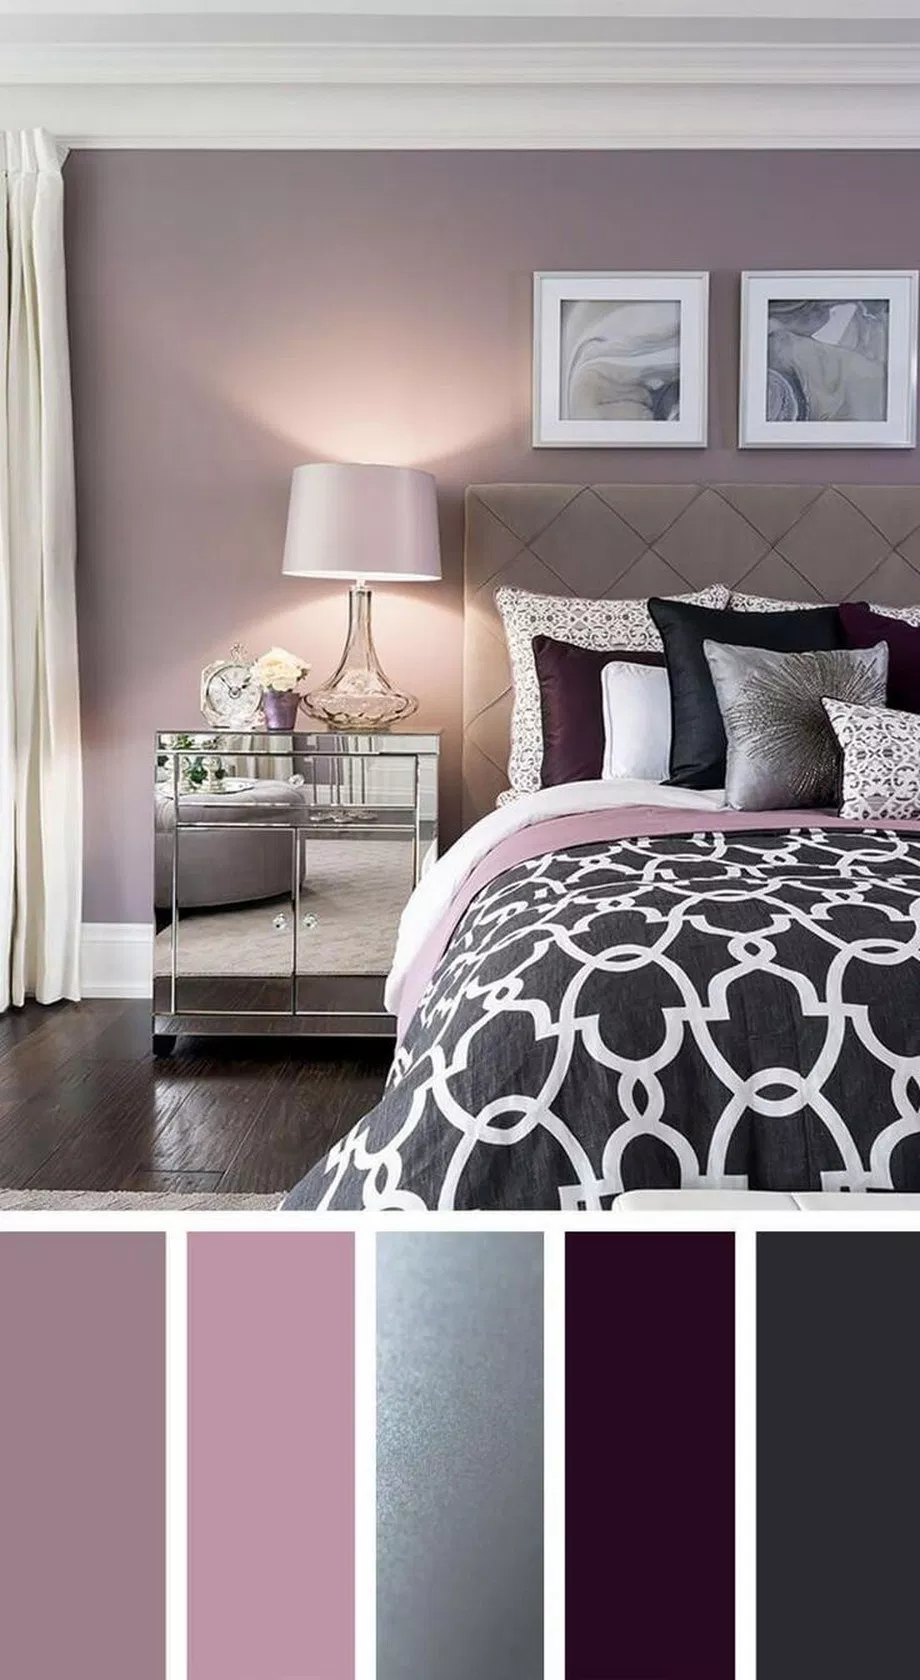 11 Romantic Bedroom Ideas for Couples #couplesbedroomideas